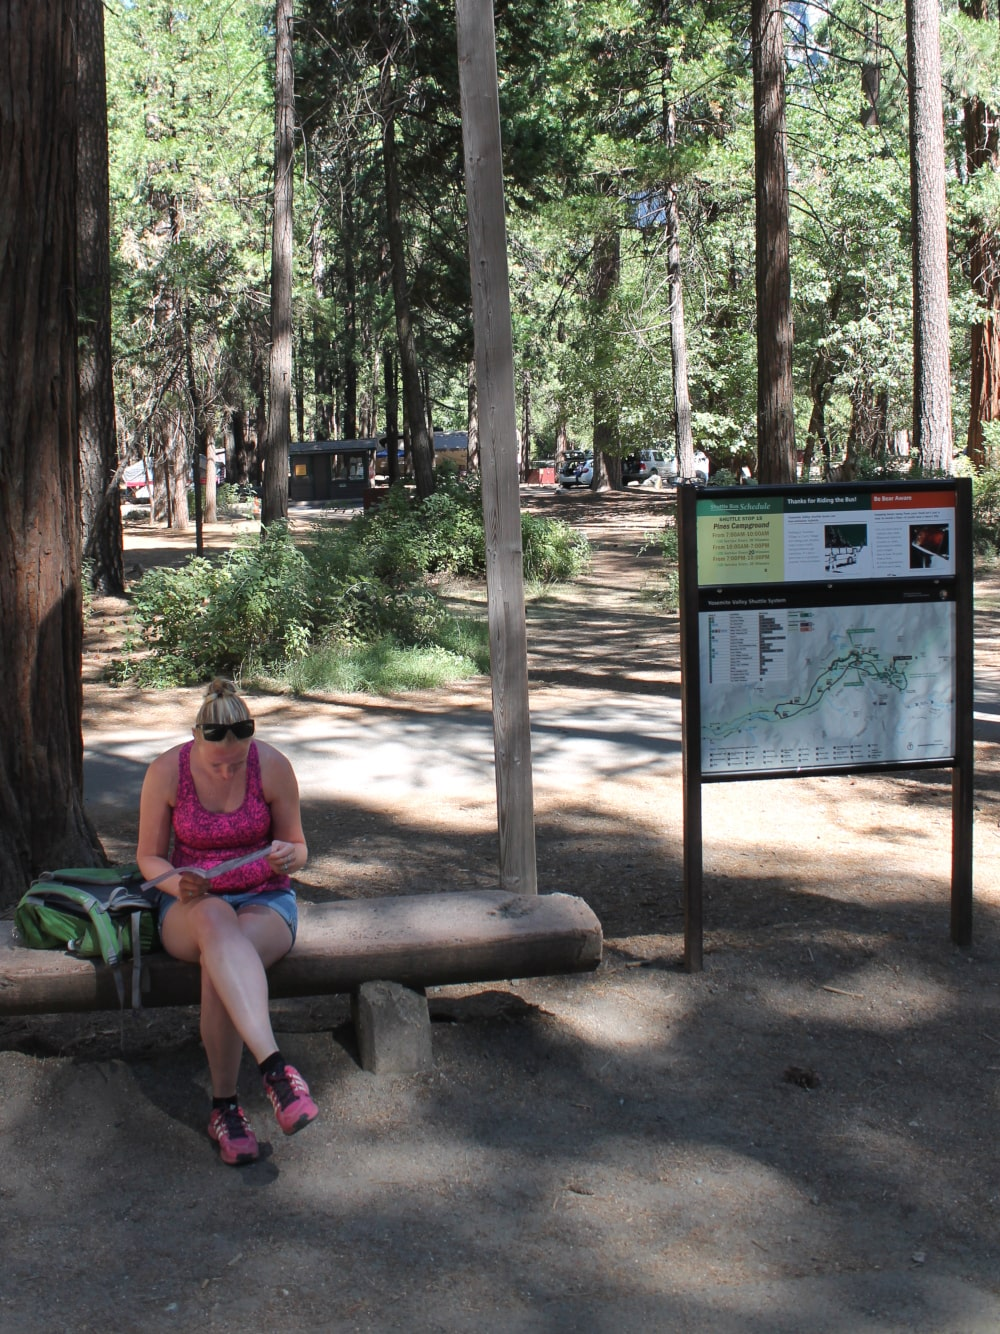 Waiting for the shuttle bus in Yosemite National Park